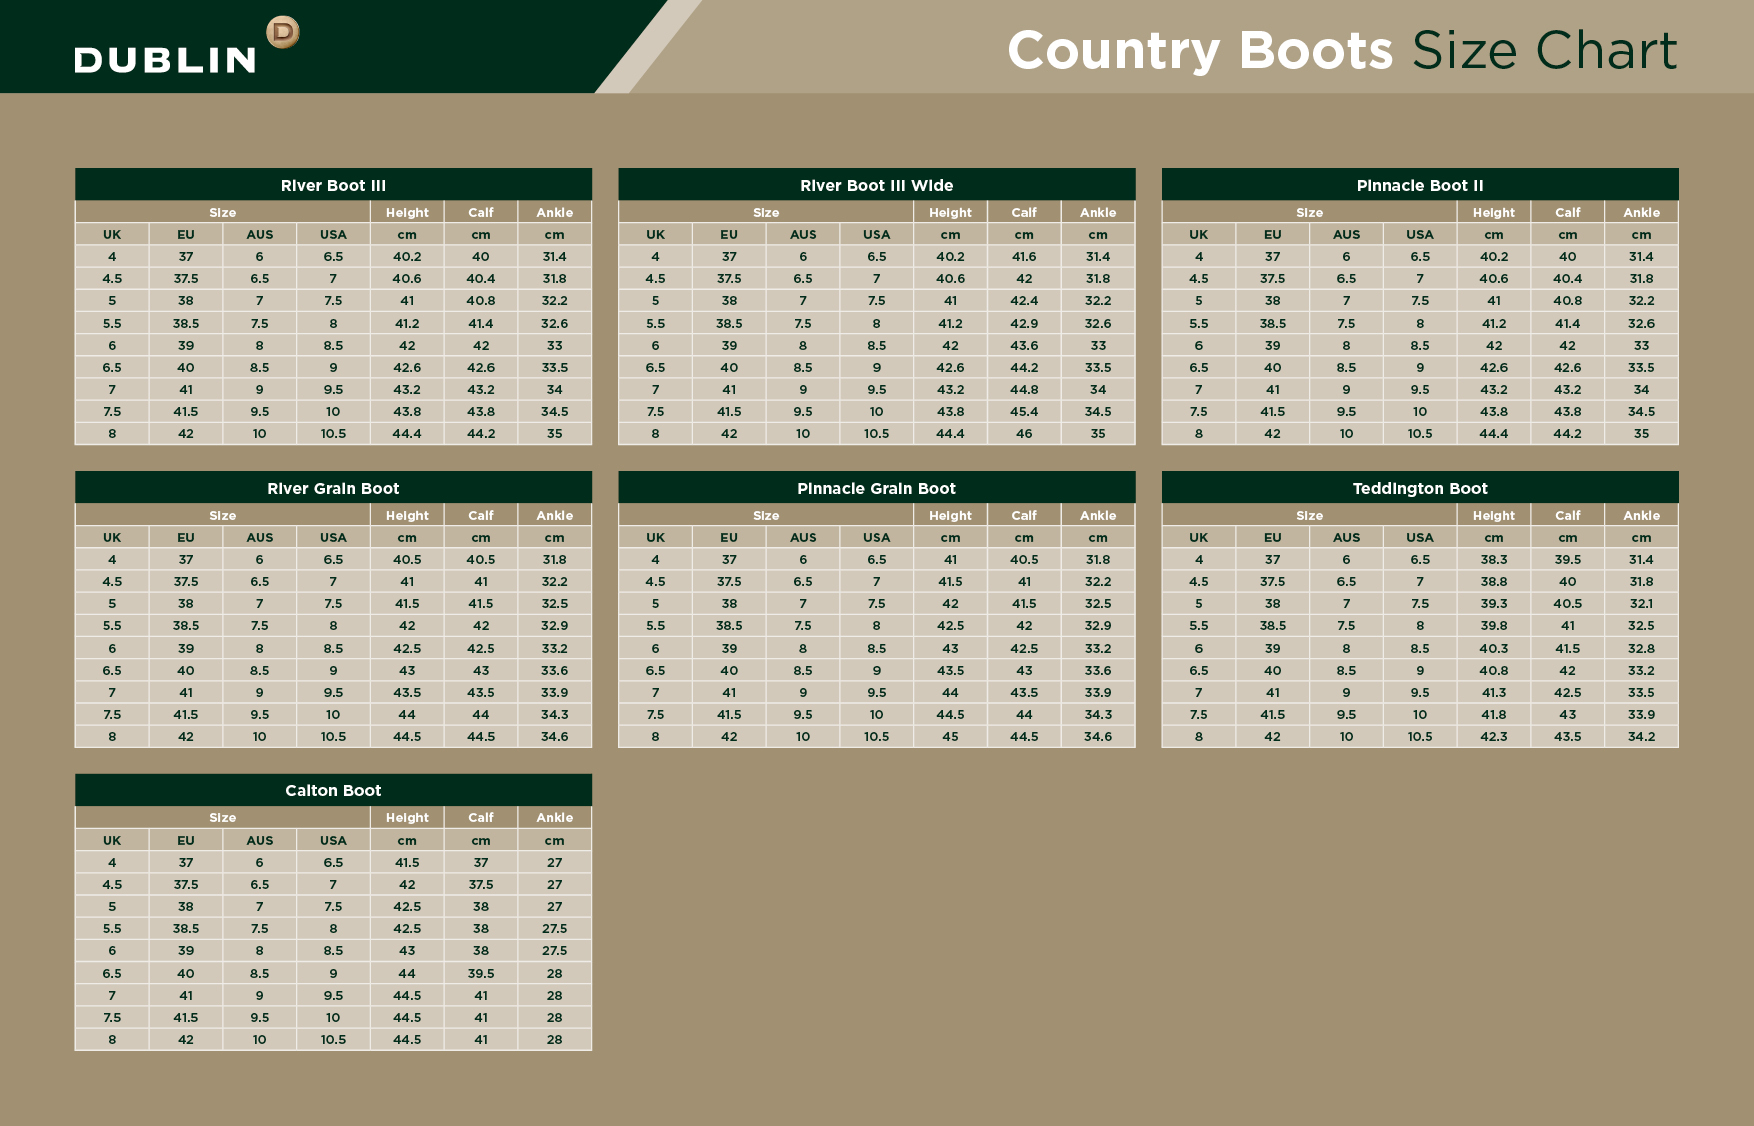 Dublin Country Boots Size Chart